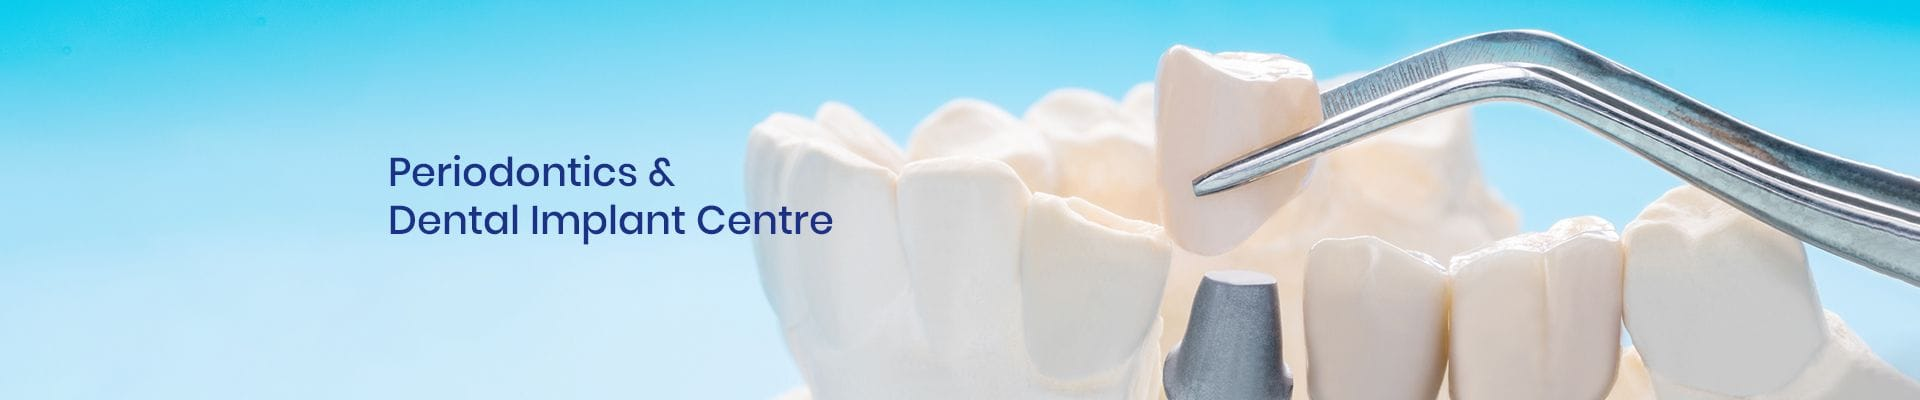 Contact Periodontics & Dental Implant Centre | Brisbane QLD